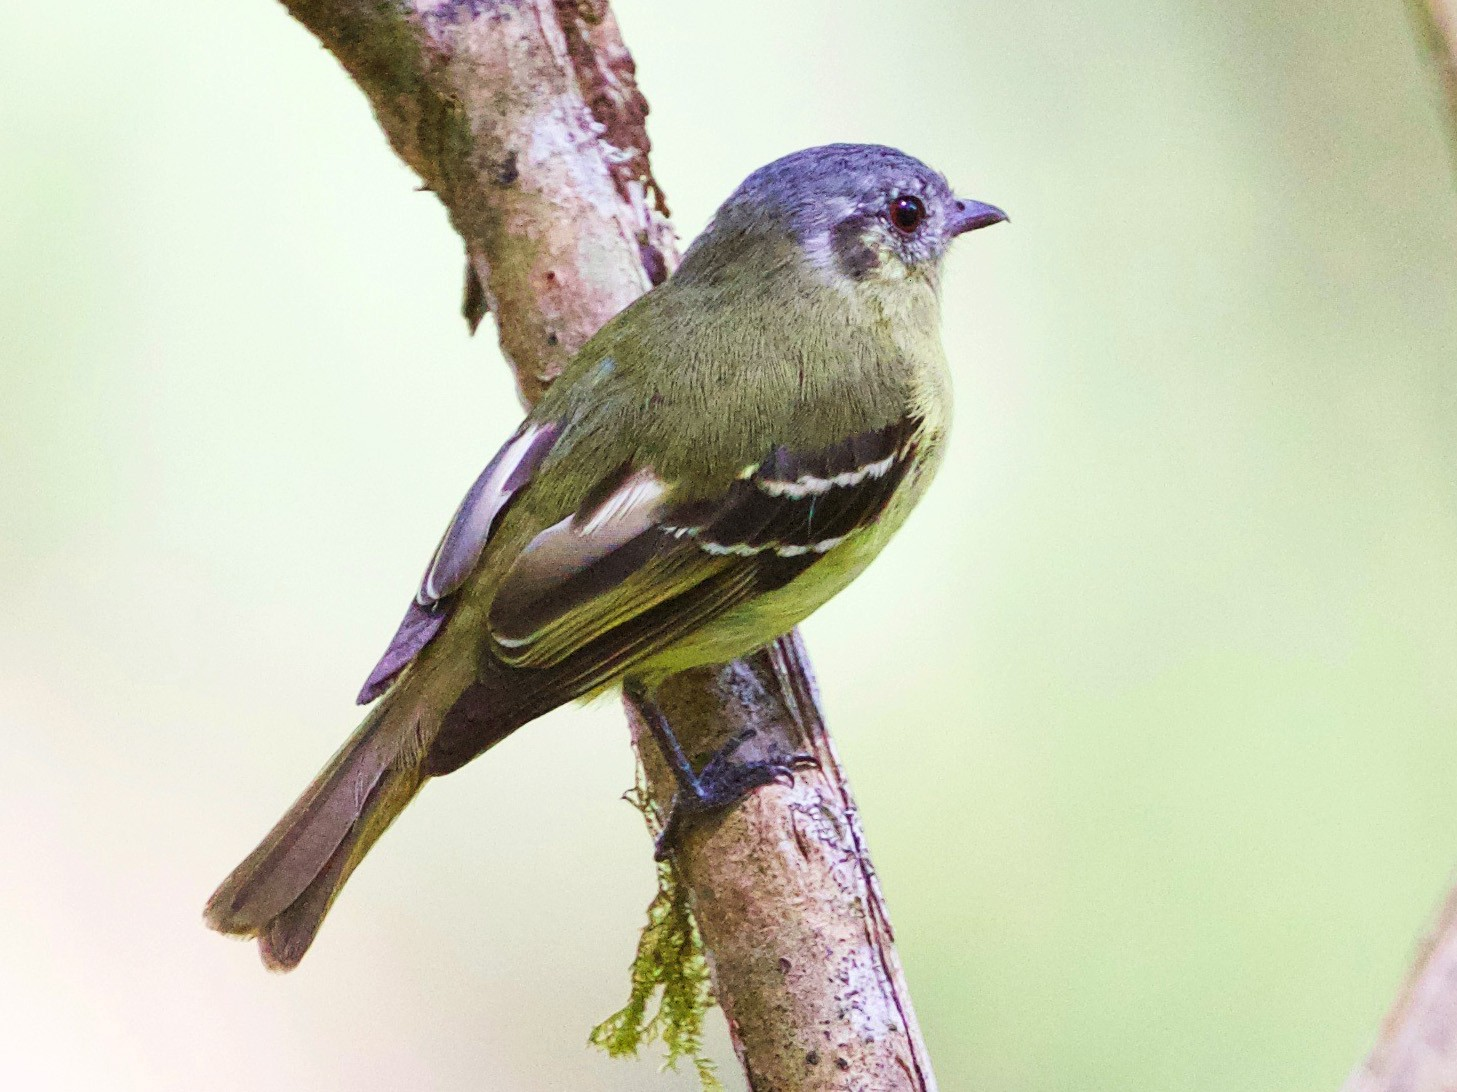 Ashy-headed Tyrannulet - Cory Gregory